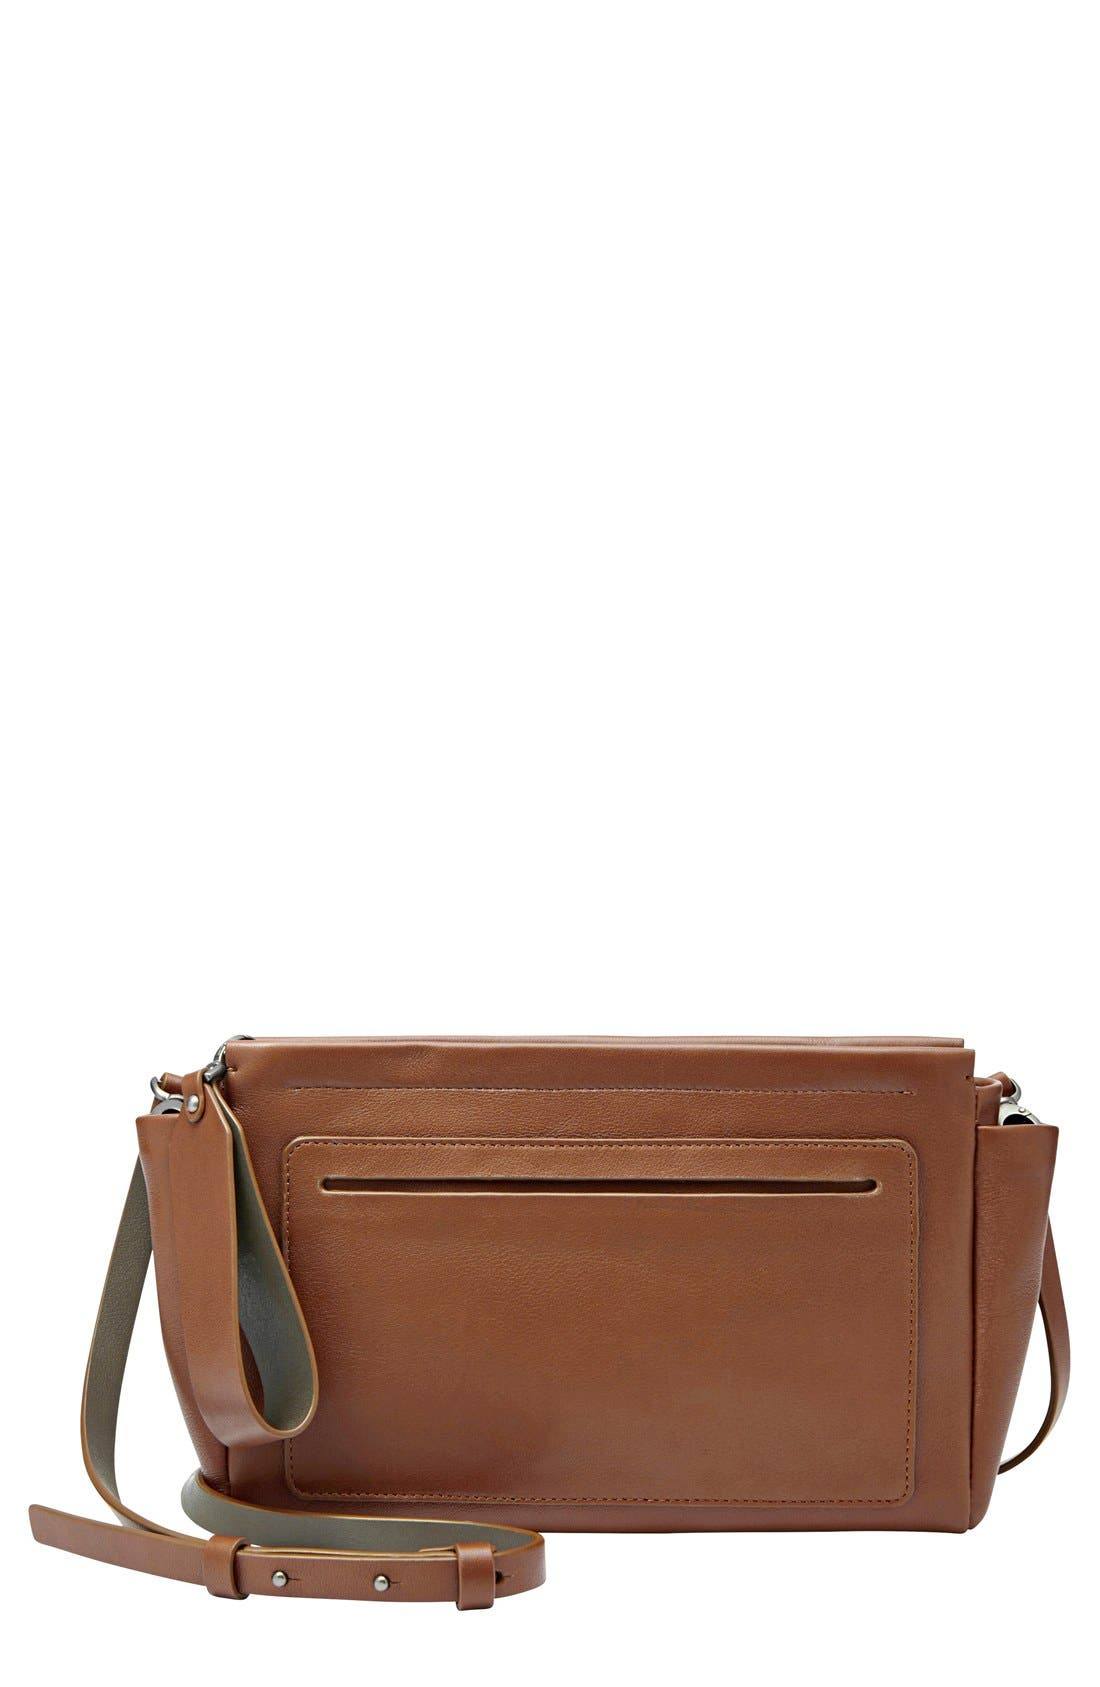 Main Image - Skagen 'Dorte' Convertible Crossbody Bag